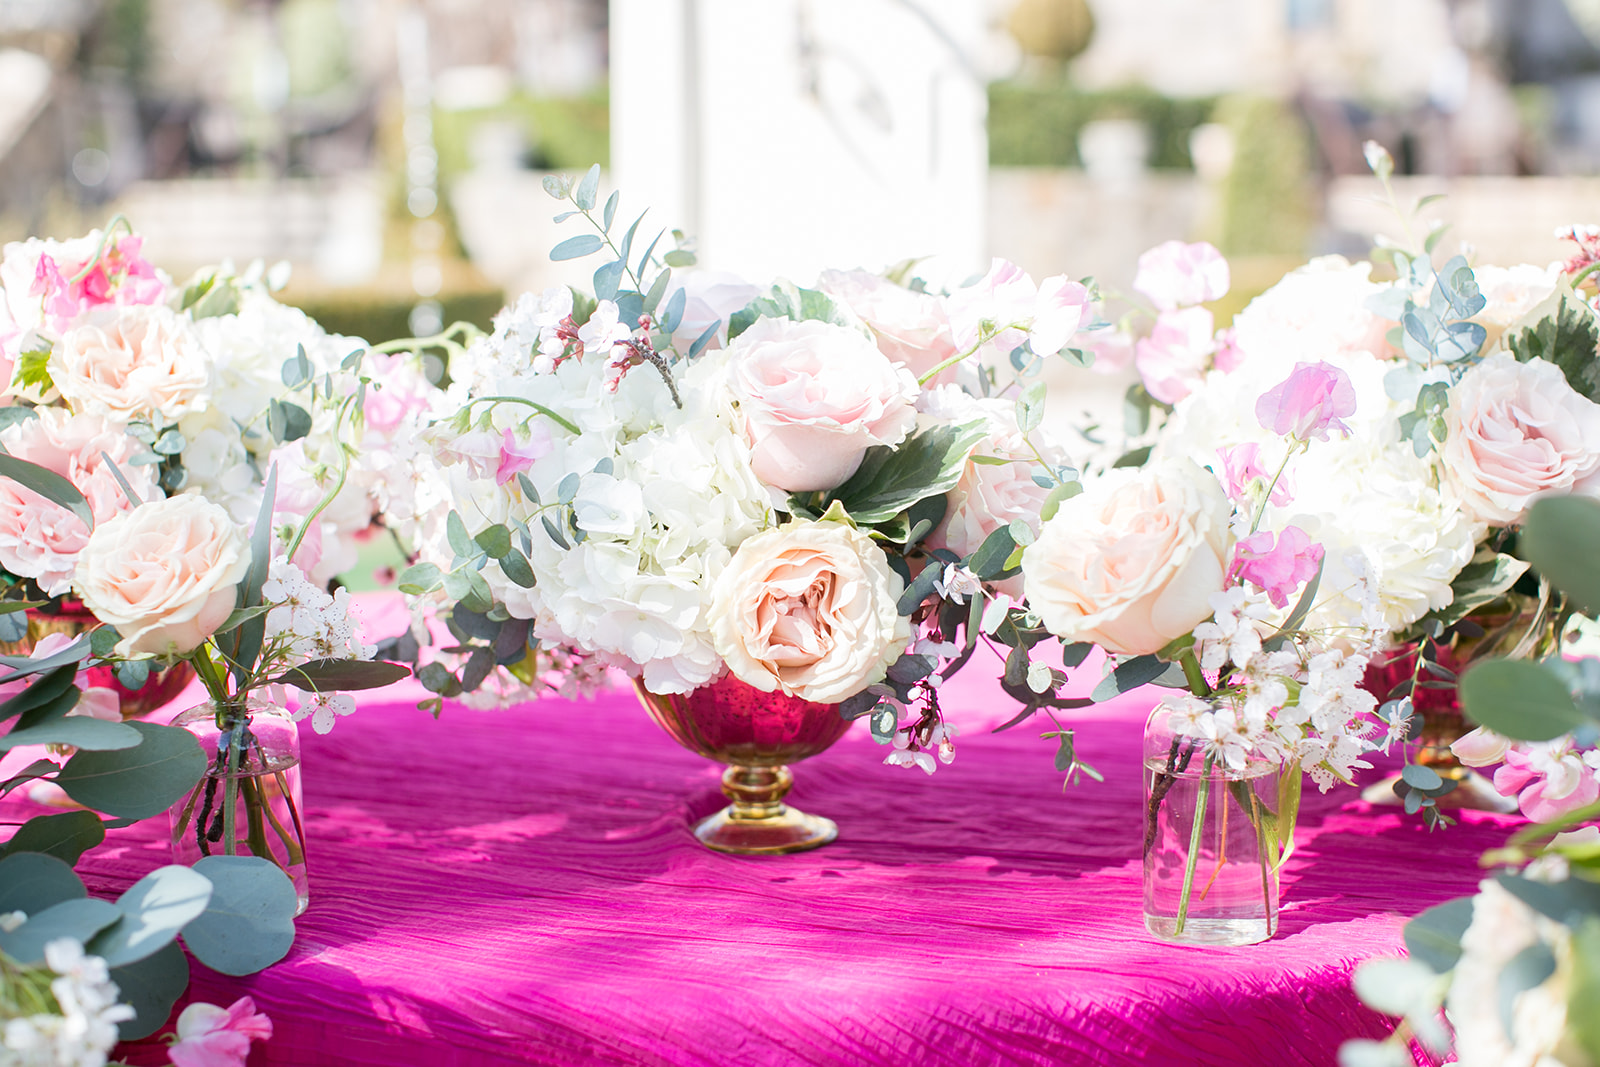 gold vases with pink flowers with pink table